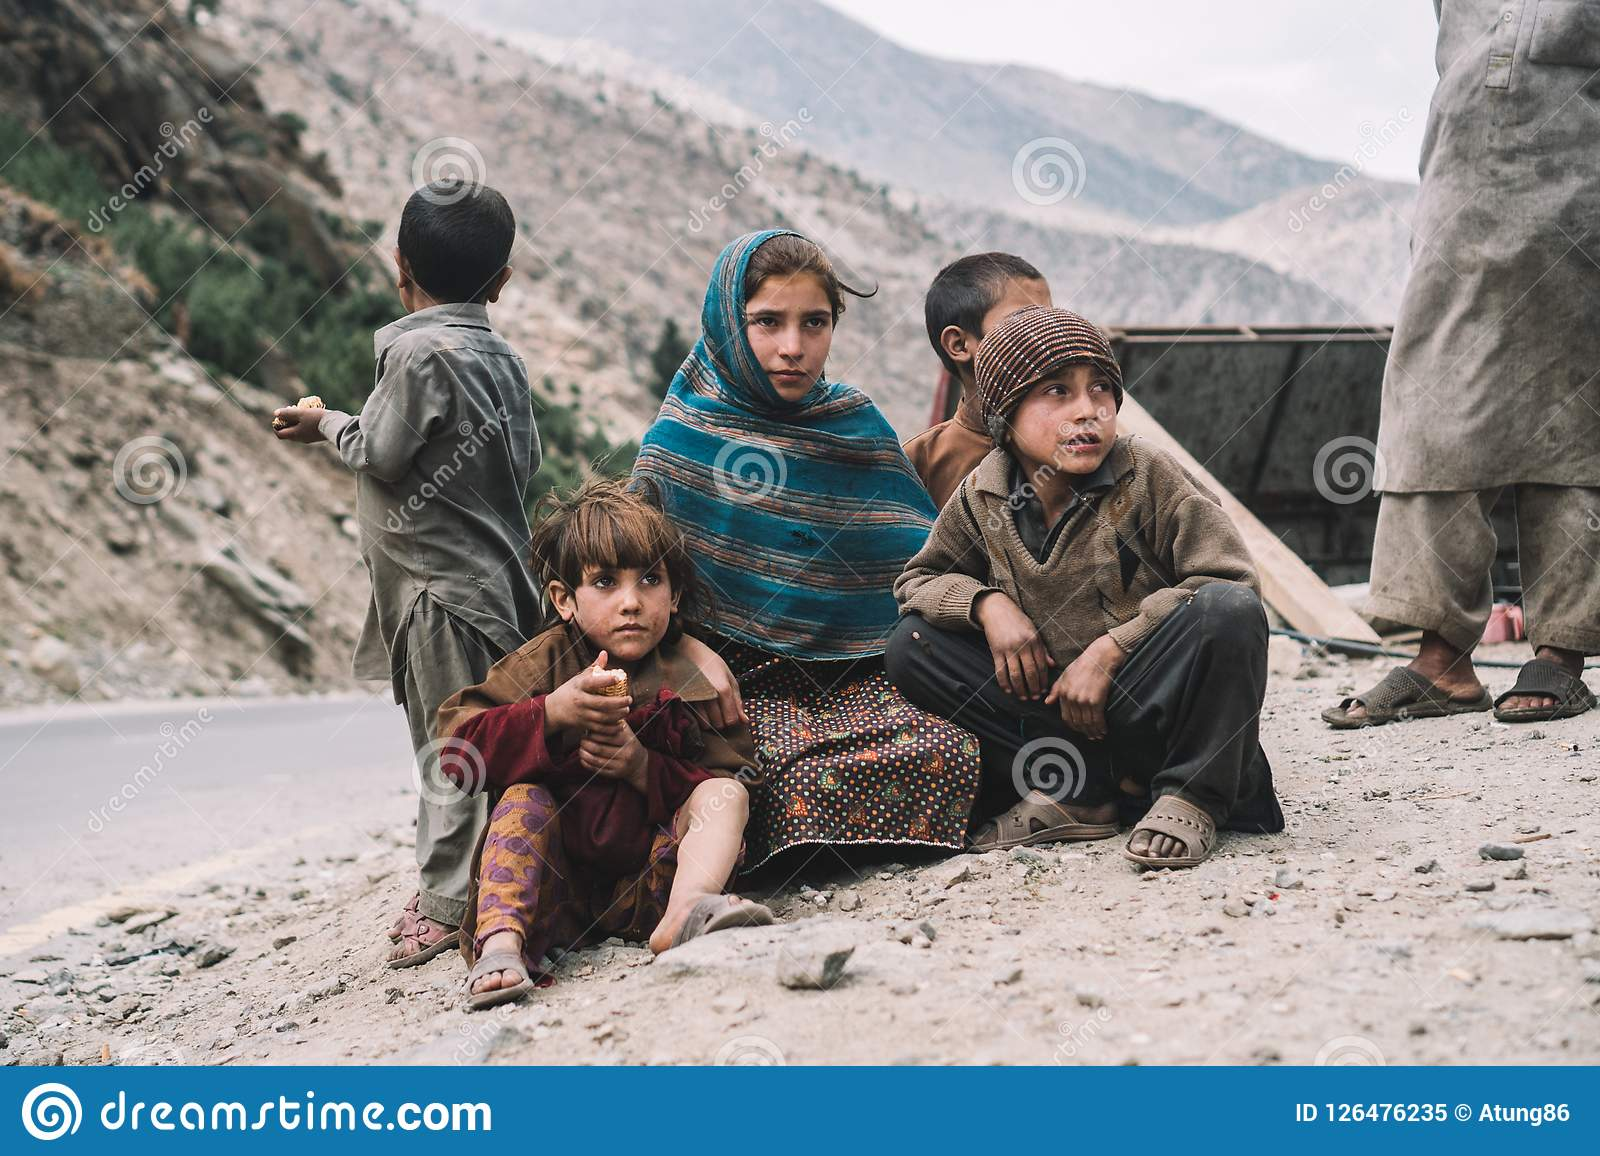 pakistani-poor-children-poor-children-pakistan-captured-way-naran-to-hunza-126476235.jpg